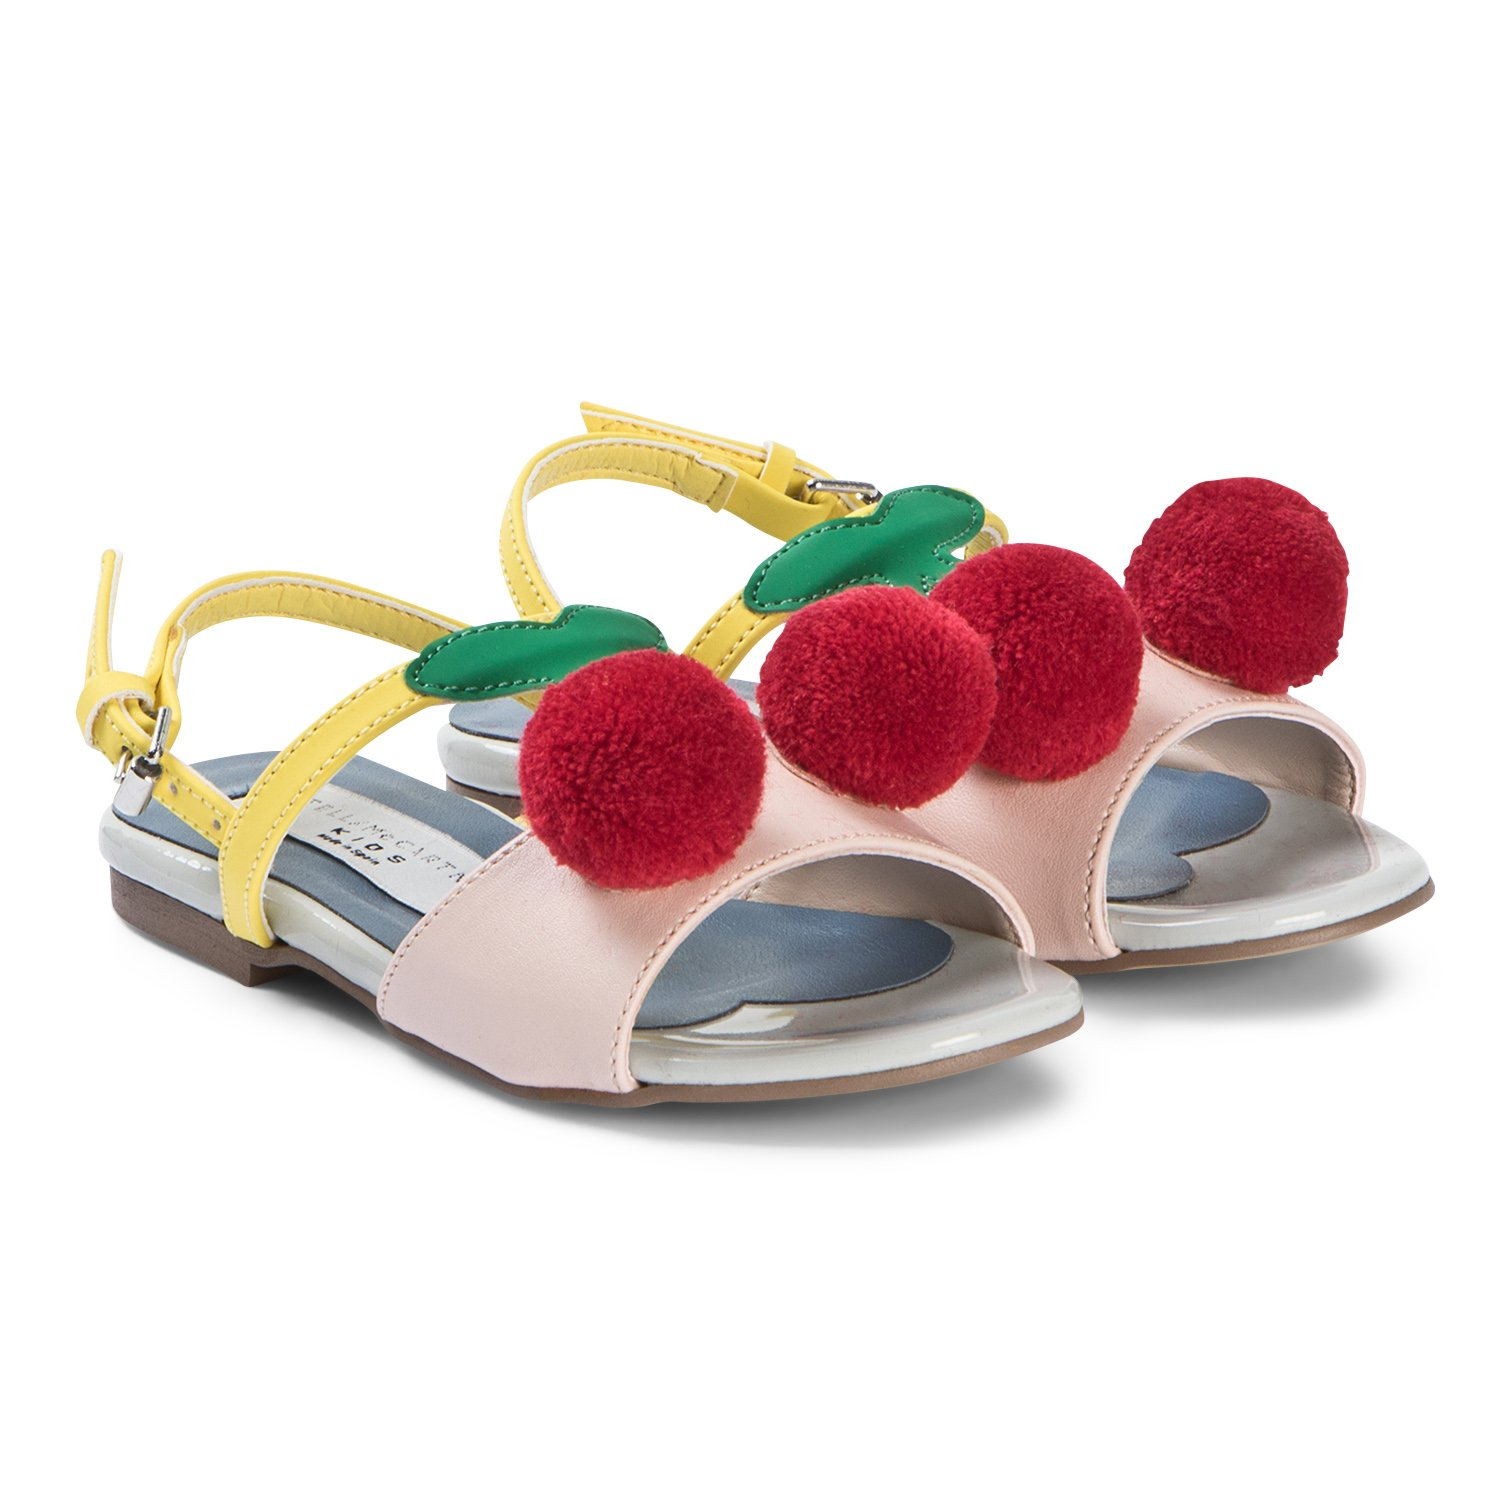 Stella McCartney Kids Sandals